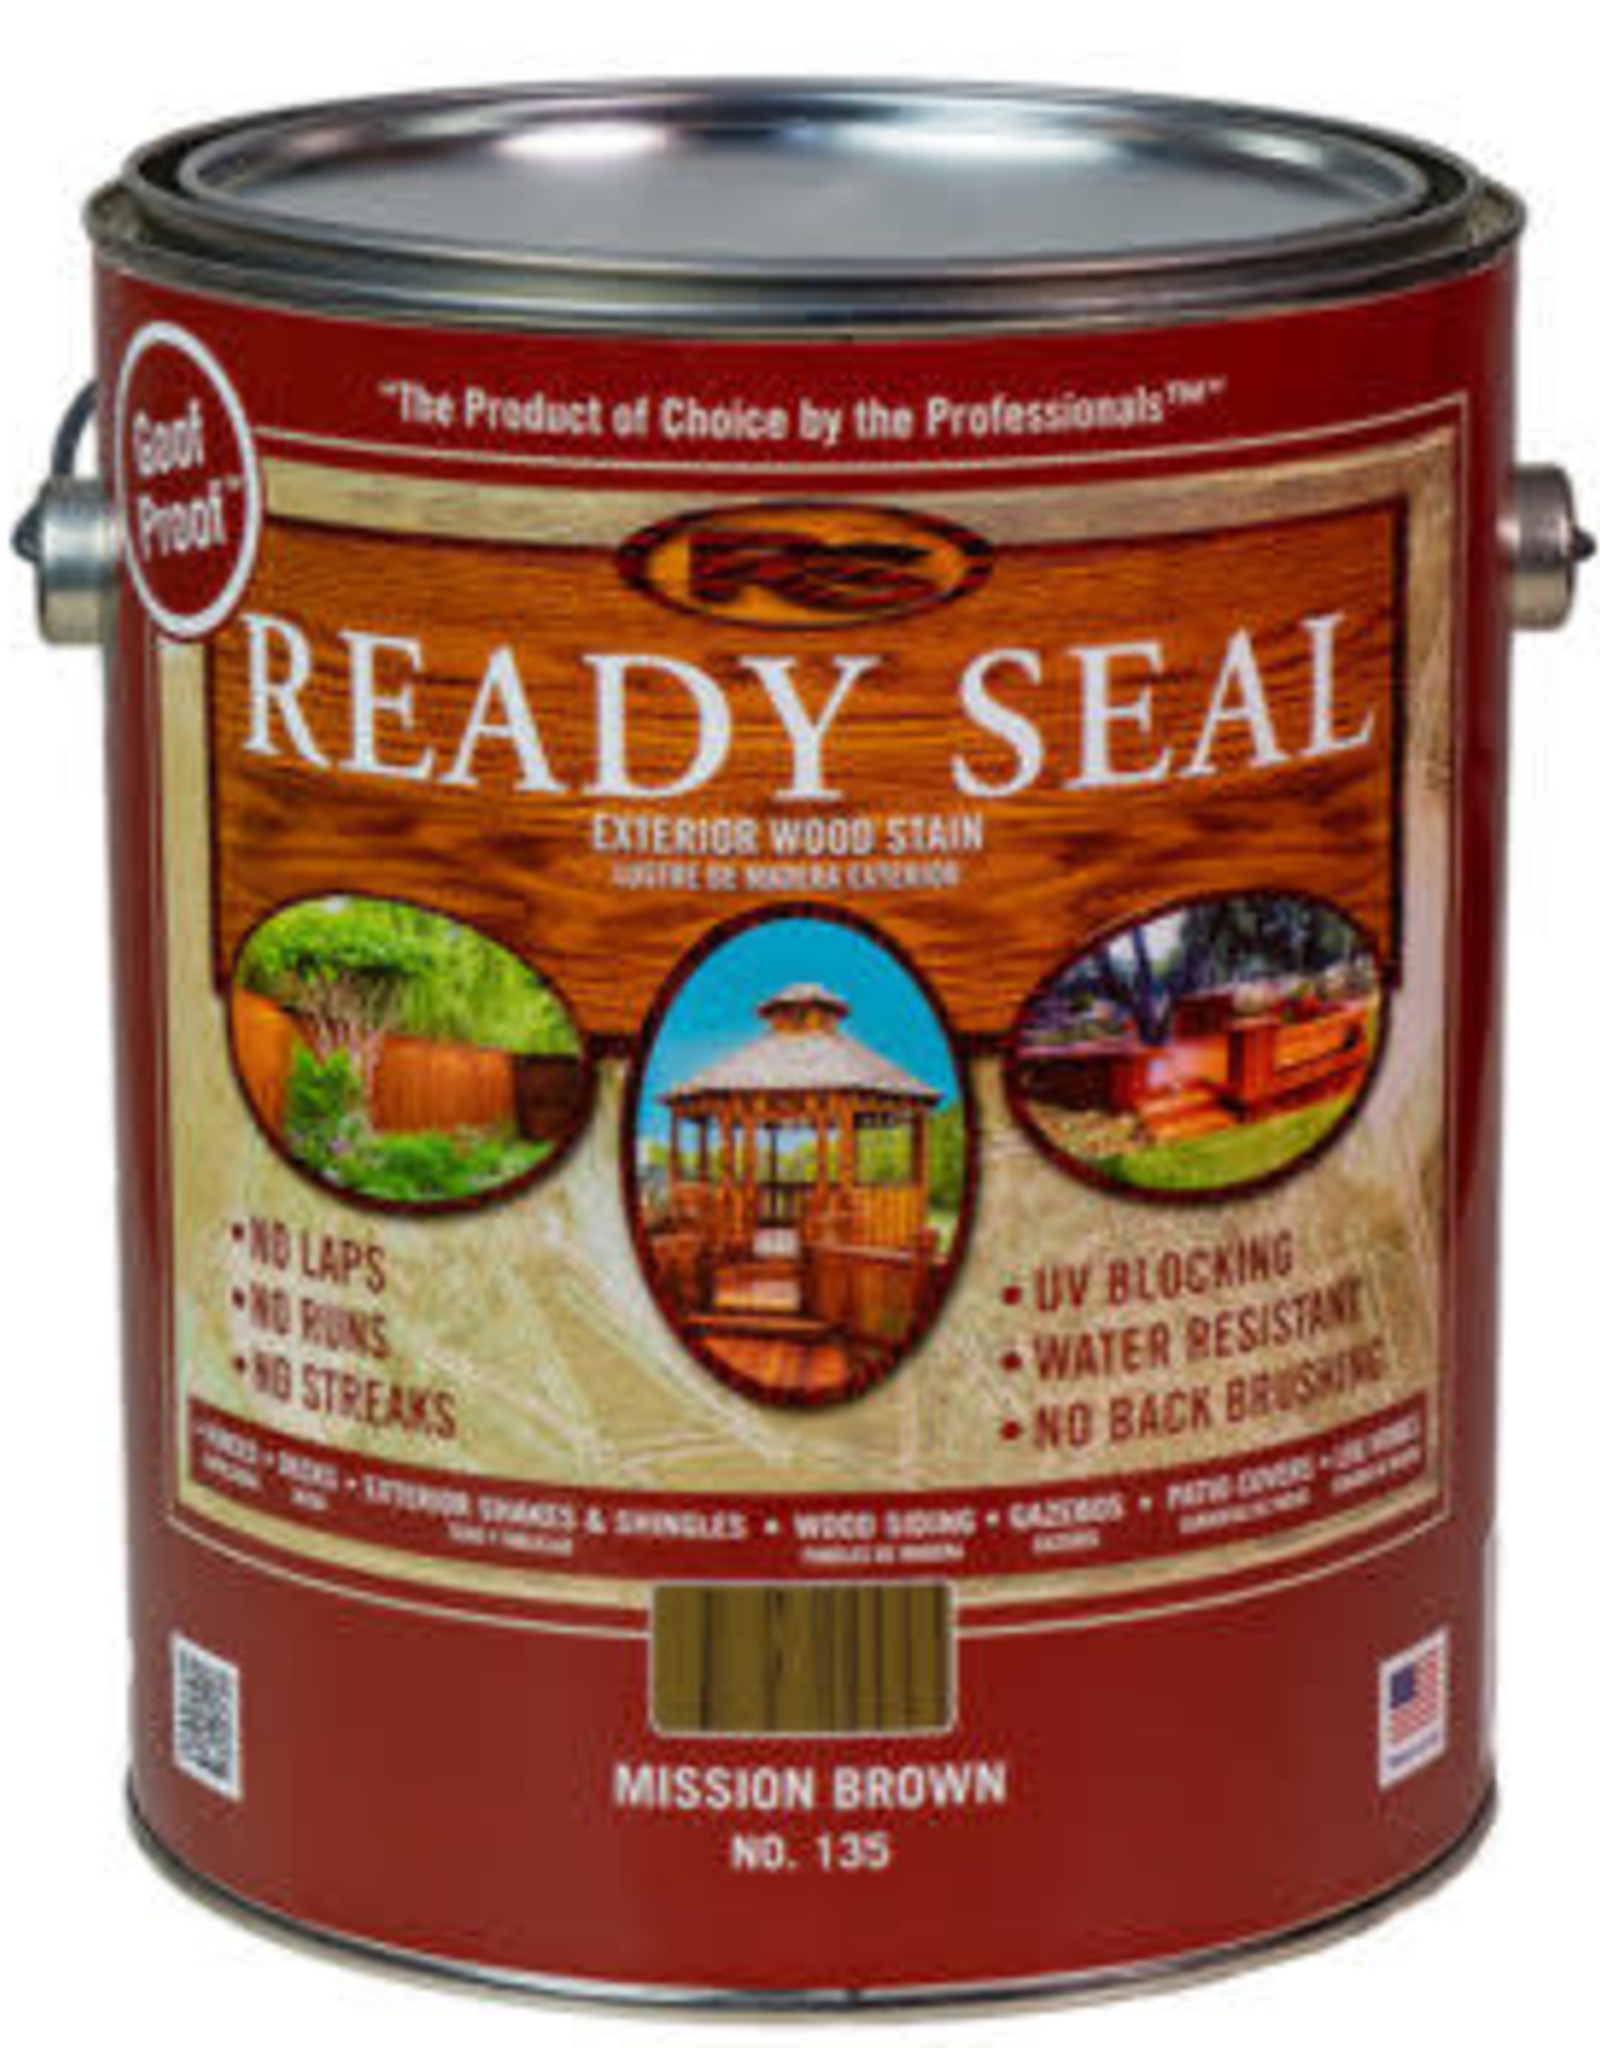 Ready Seal Ready Seal - 1 - Gallon - Mission Brown